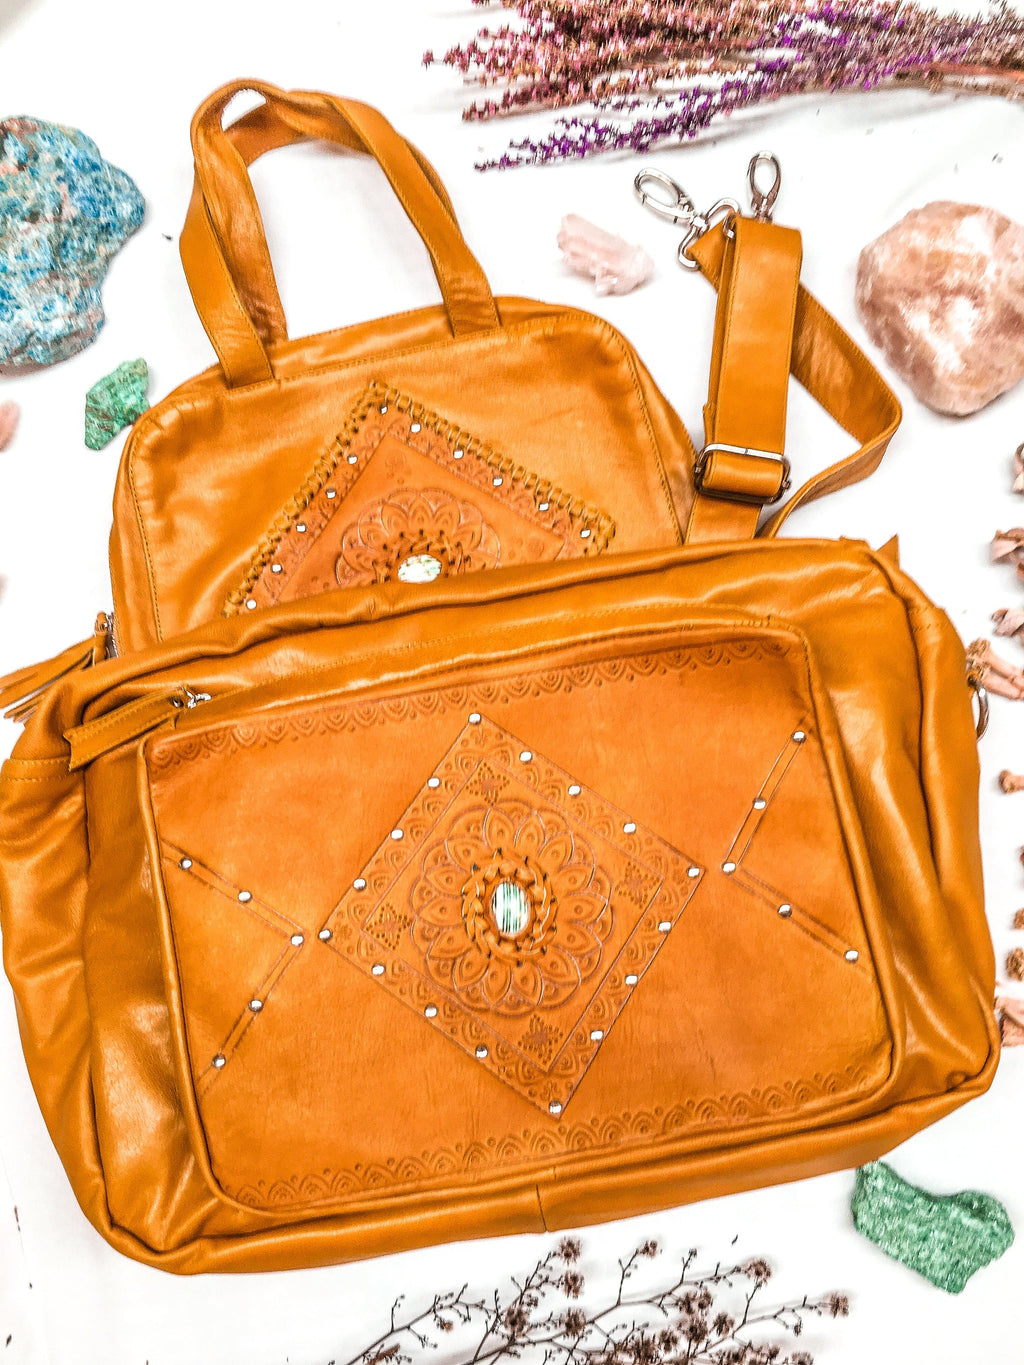 Little Dreamer Baby Bag + Insert FRINGE FREE - EXCLUSIVE TO OUR ONLINE STORE